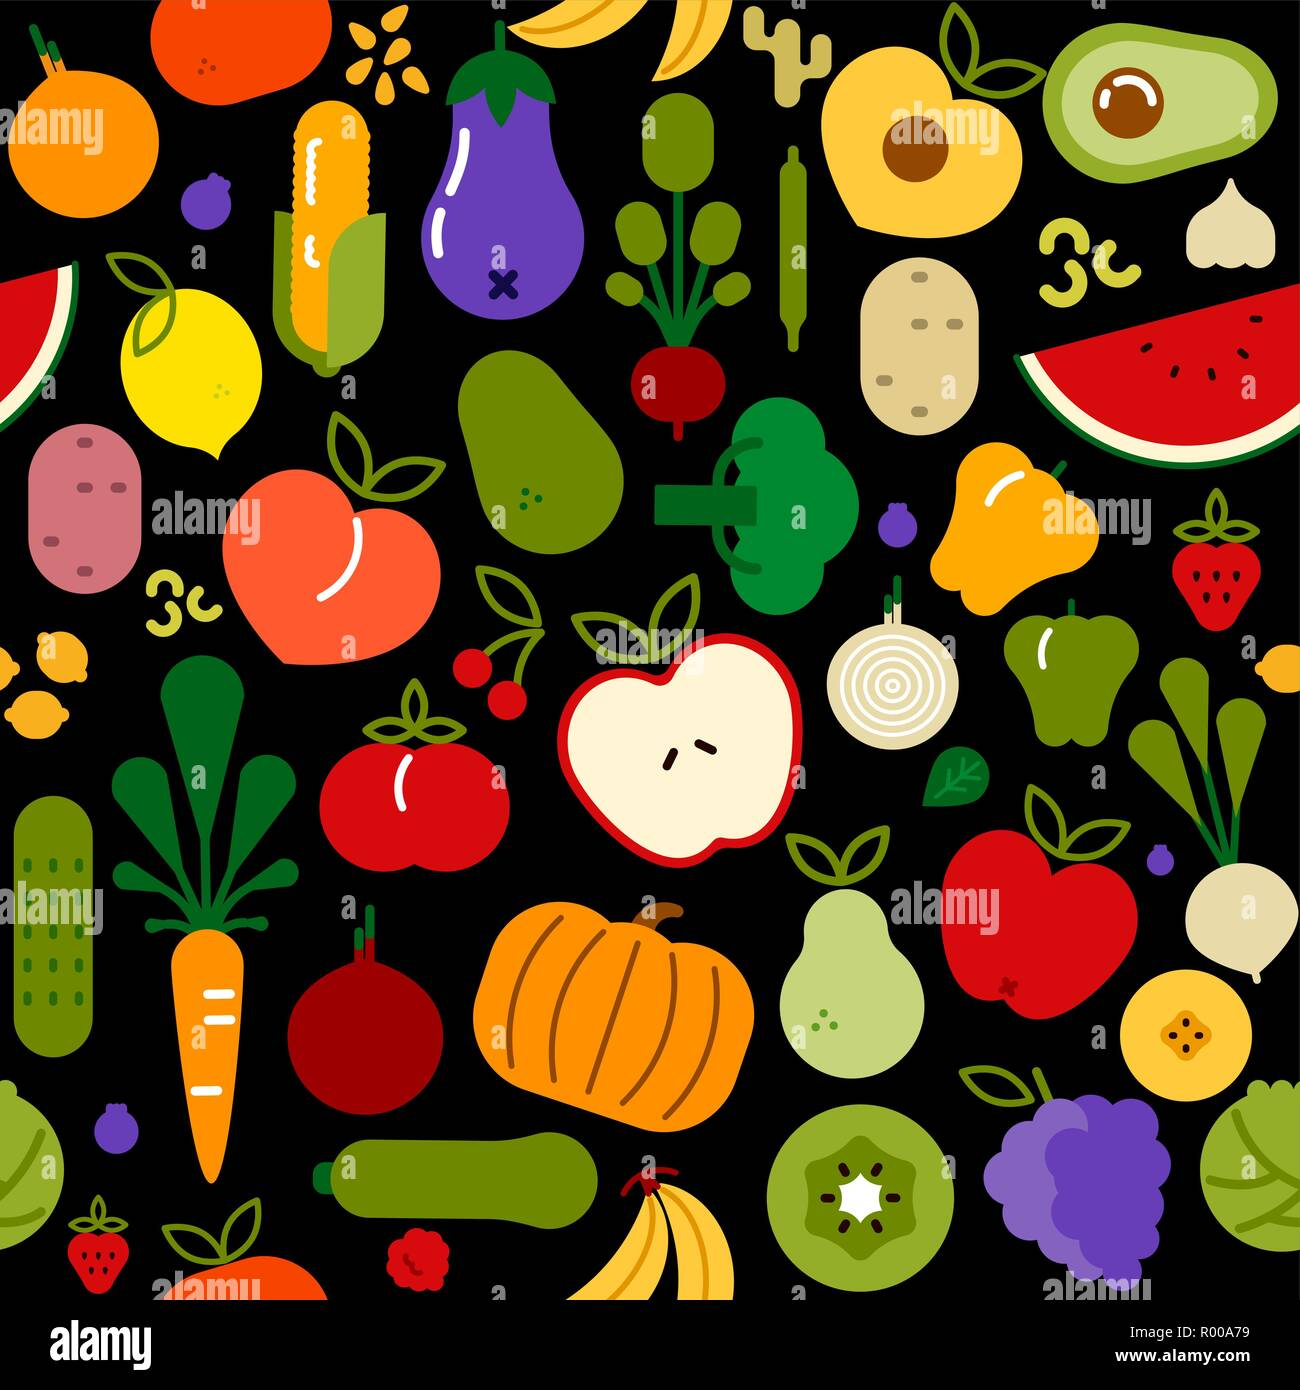 Vegetarian food icon seamless pattern with colorful flat